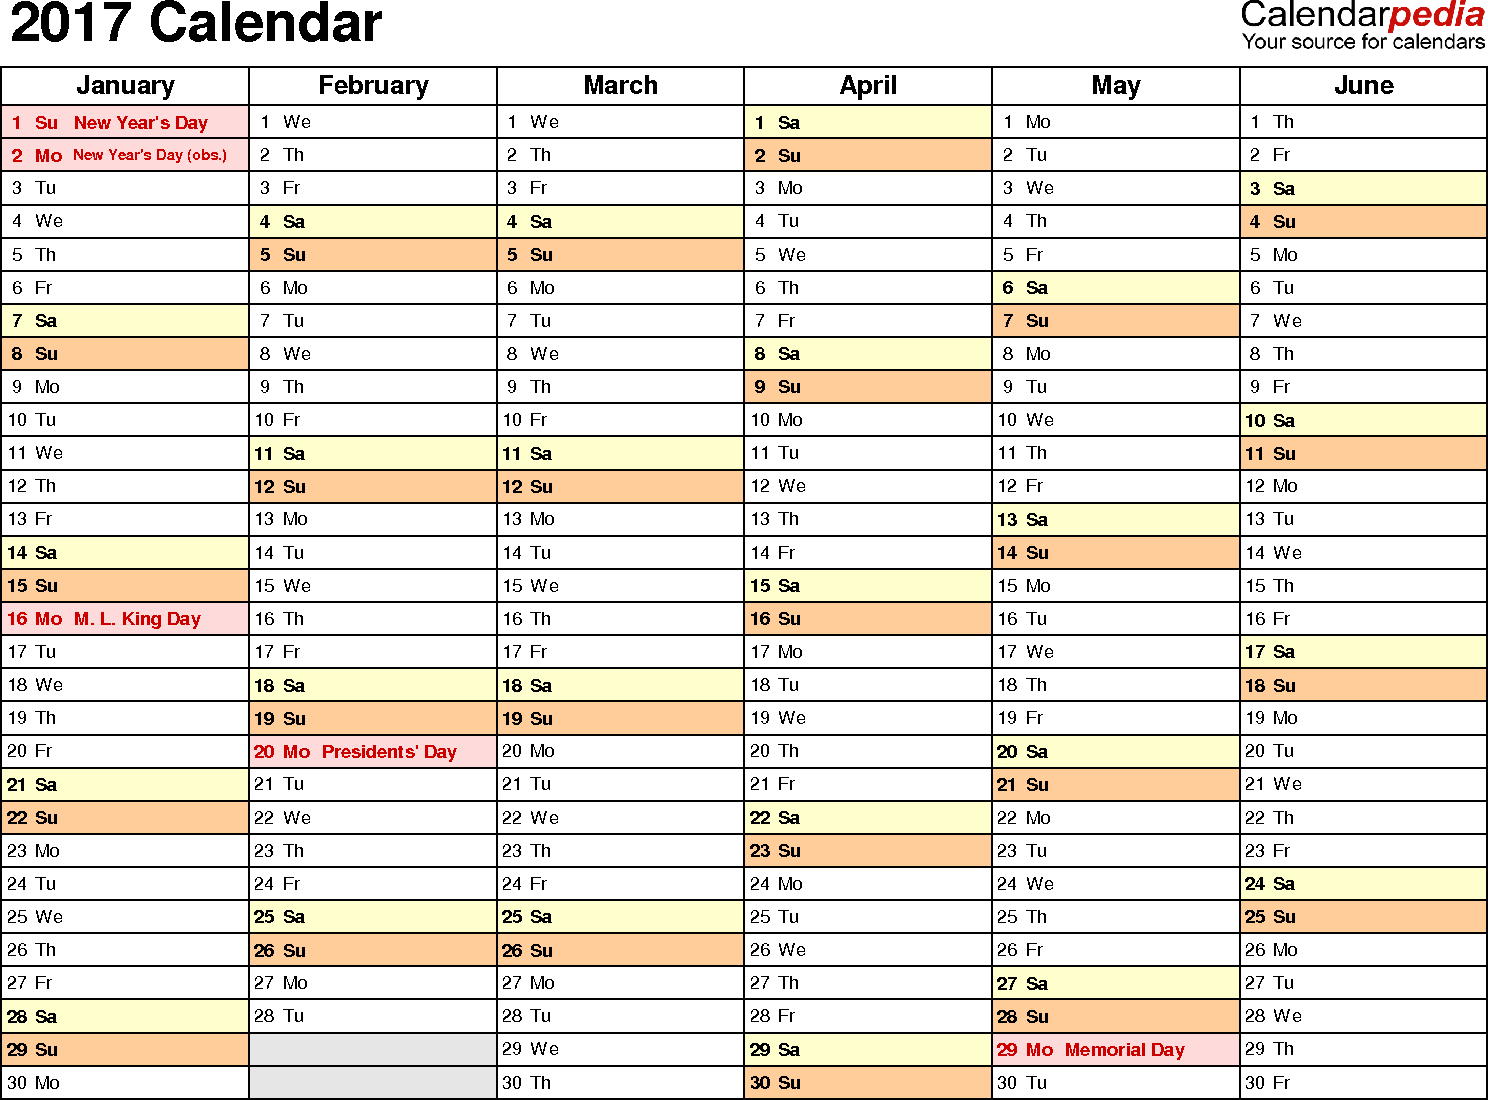 Ediblewildsus  Ravishing  Calendar  Download  Free Printable Excel Templates Xls With Hot Template   Calendar For Excel Months Horizontally  Pages Landscape Orientation With Astonishing Action Plan Excel Template Also Greater Than Or Less Than Excel In Addition Oracle Excel Add In And Excel Fitness Center As Well As How Do You Make Graphs In Excel Additionally Addition Function In Excel From Calendarpediacom With Ediblewildsus  Hot  Calendar  Download  Free Printable Excel Templates Xls With Astonishing Template   Calendar For Excel Months Horizontally  Pages Landscape Orientation And Ravishing Action Plan Excel Template Also Greater Than Or Less Than Excel In Addition Oracle Excel Add In From Calendarpediacom